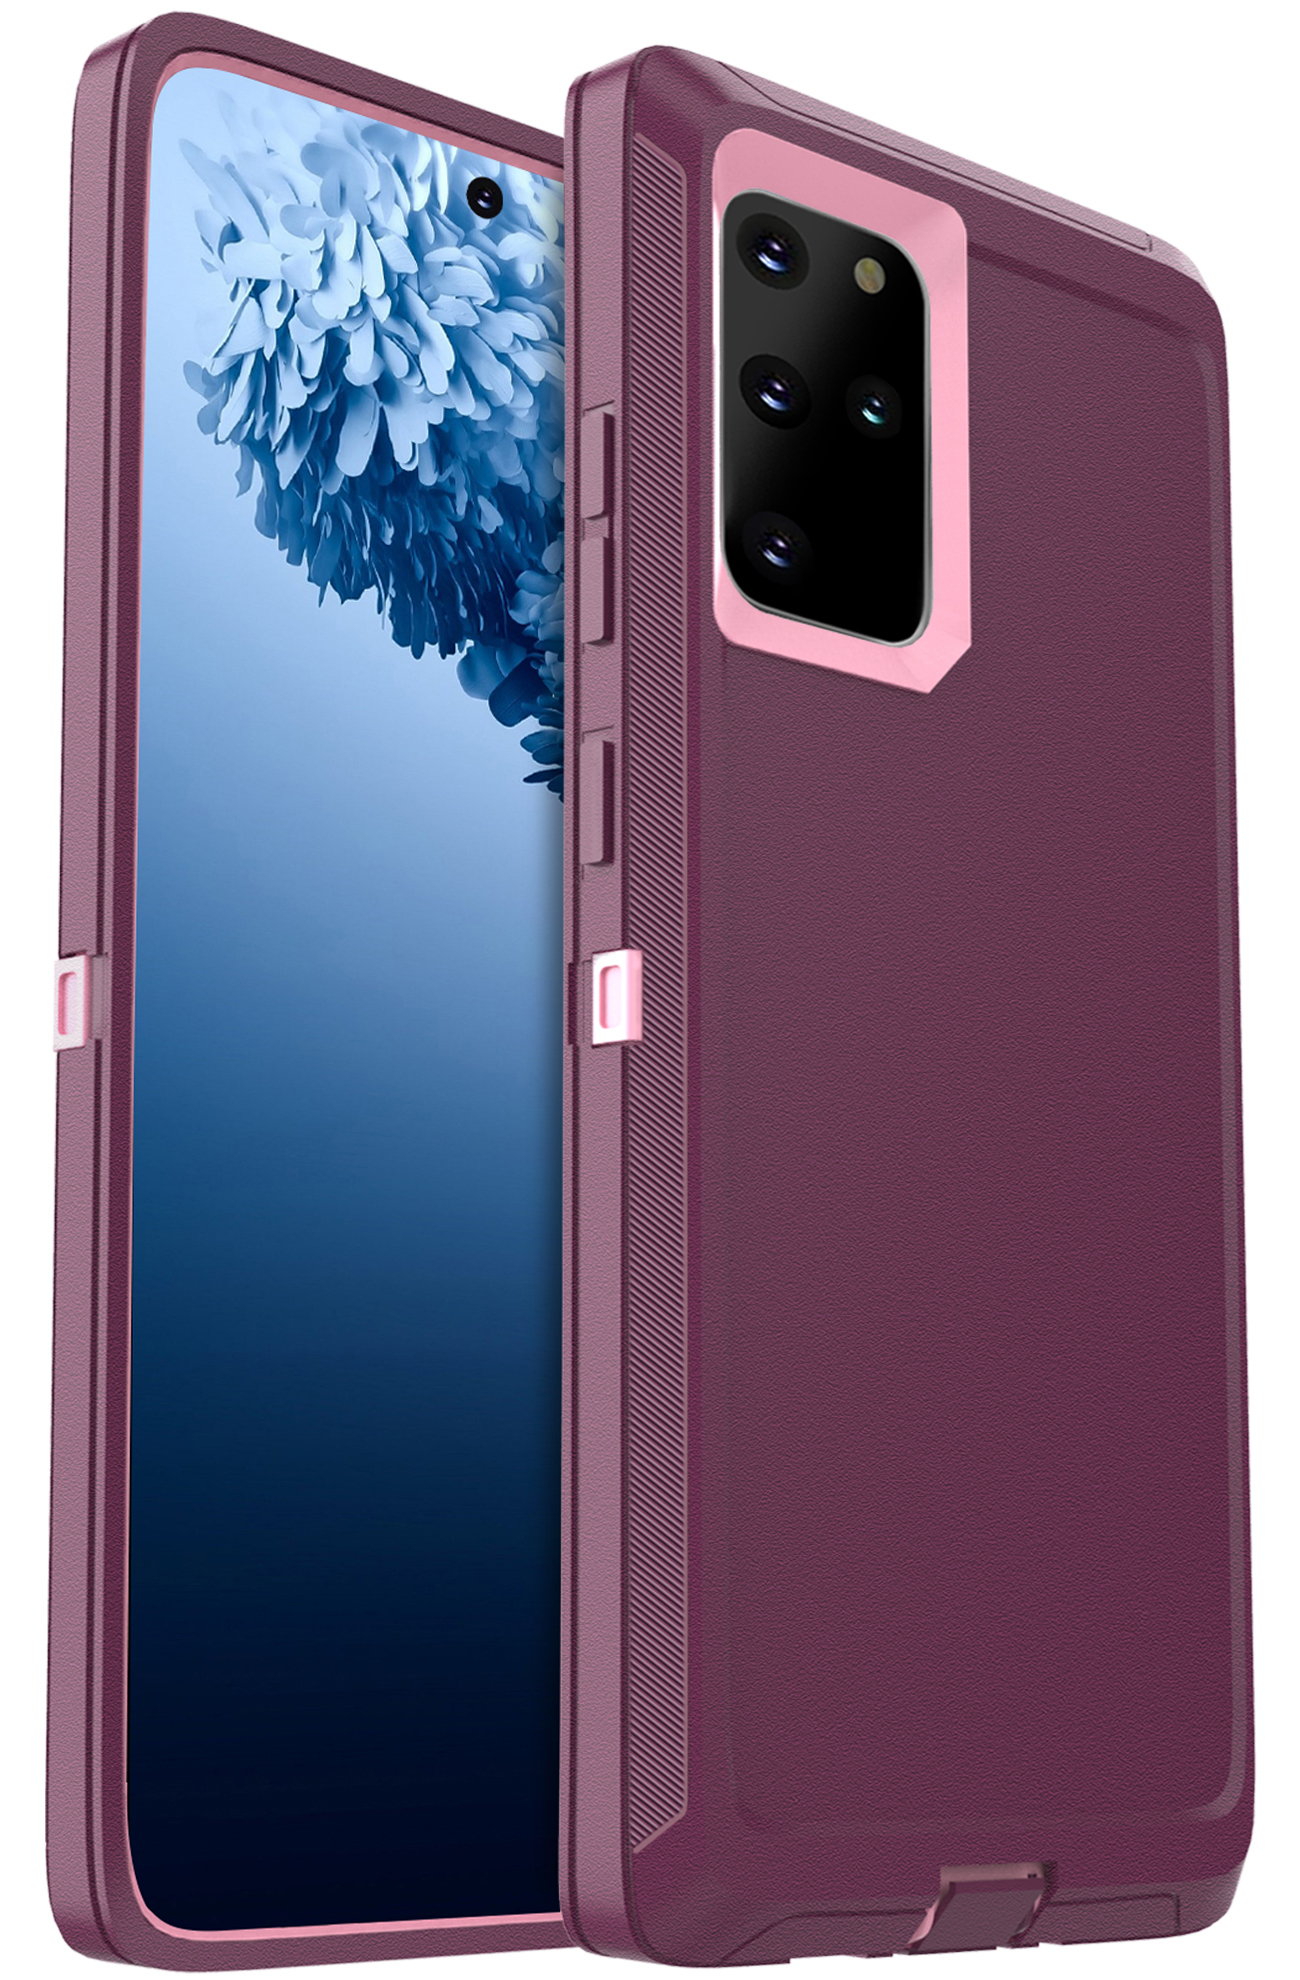 FOGEEK Compatible with Samsung Galaxy S20 Plus 5G Case, Heavy Duty Rugged Case, Protective Cover (Shockproof)(Drop Proof) Case for Galaxy S20+ 5G (6.7 inch) 2020 (Wine/Pink)